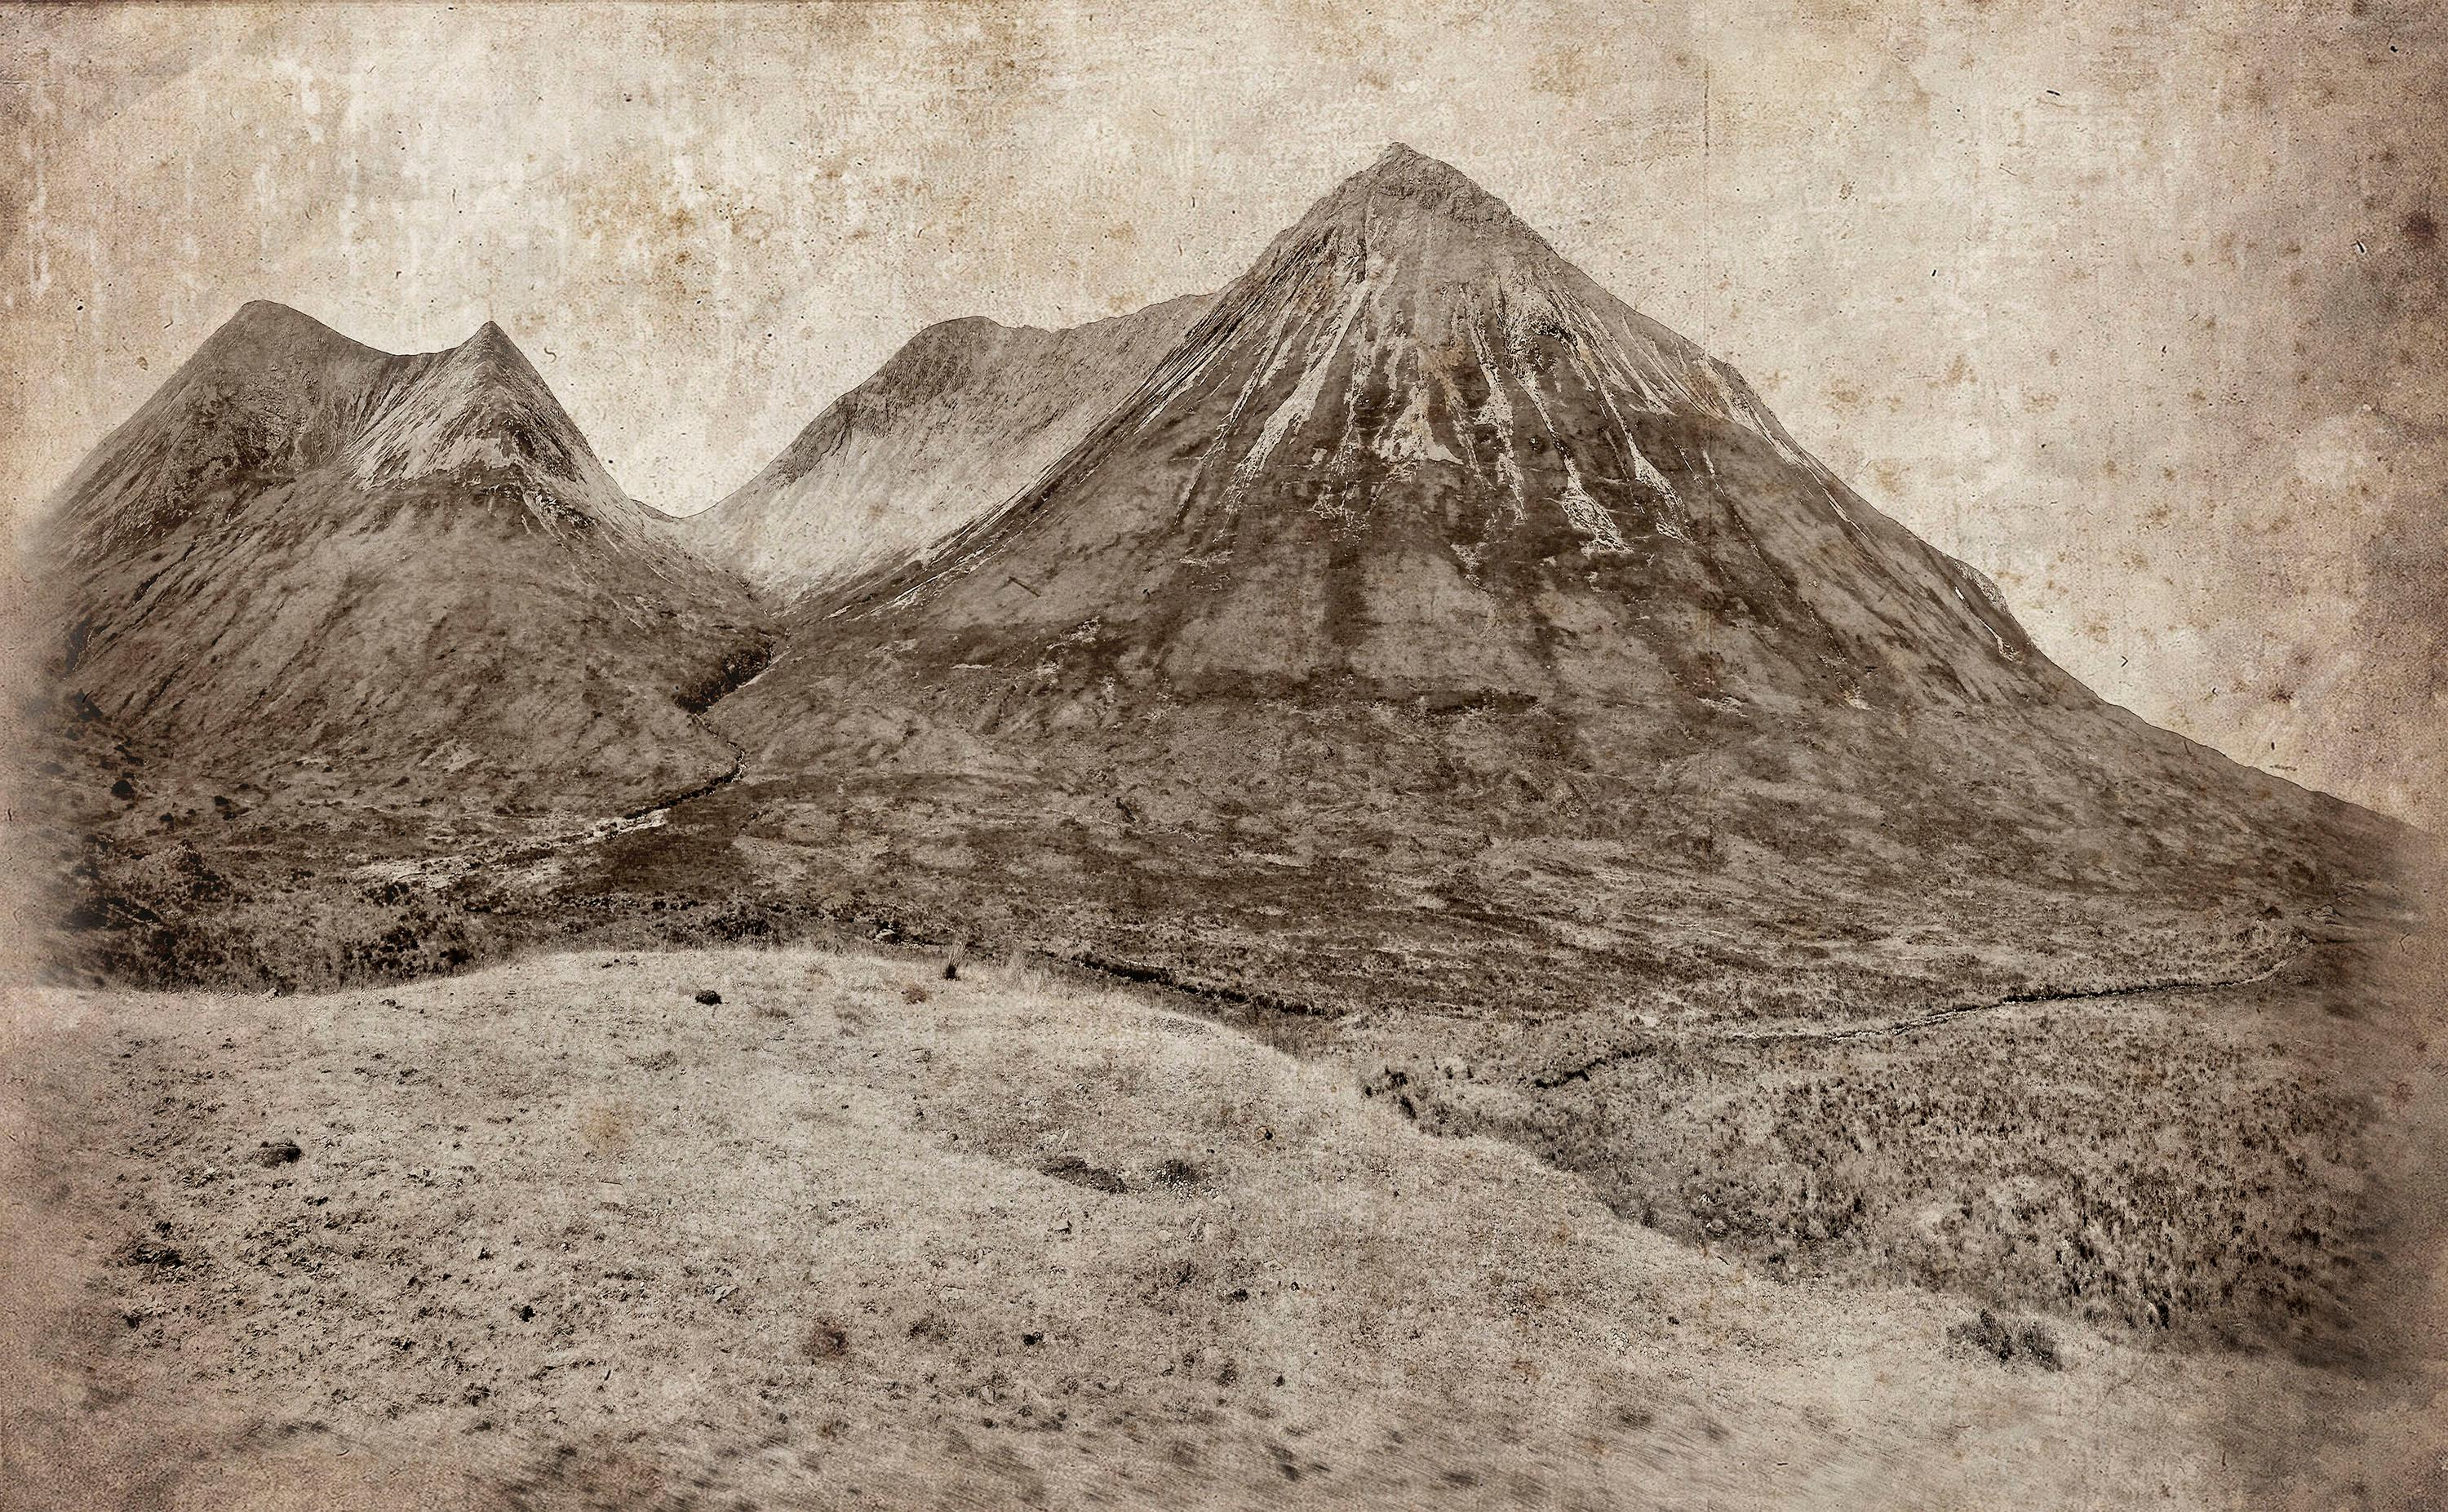 Cuillin Hills: Large Rustic Sepia Landscape Photograph of Mountains in Scotland